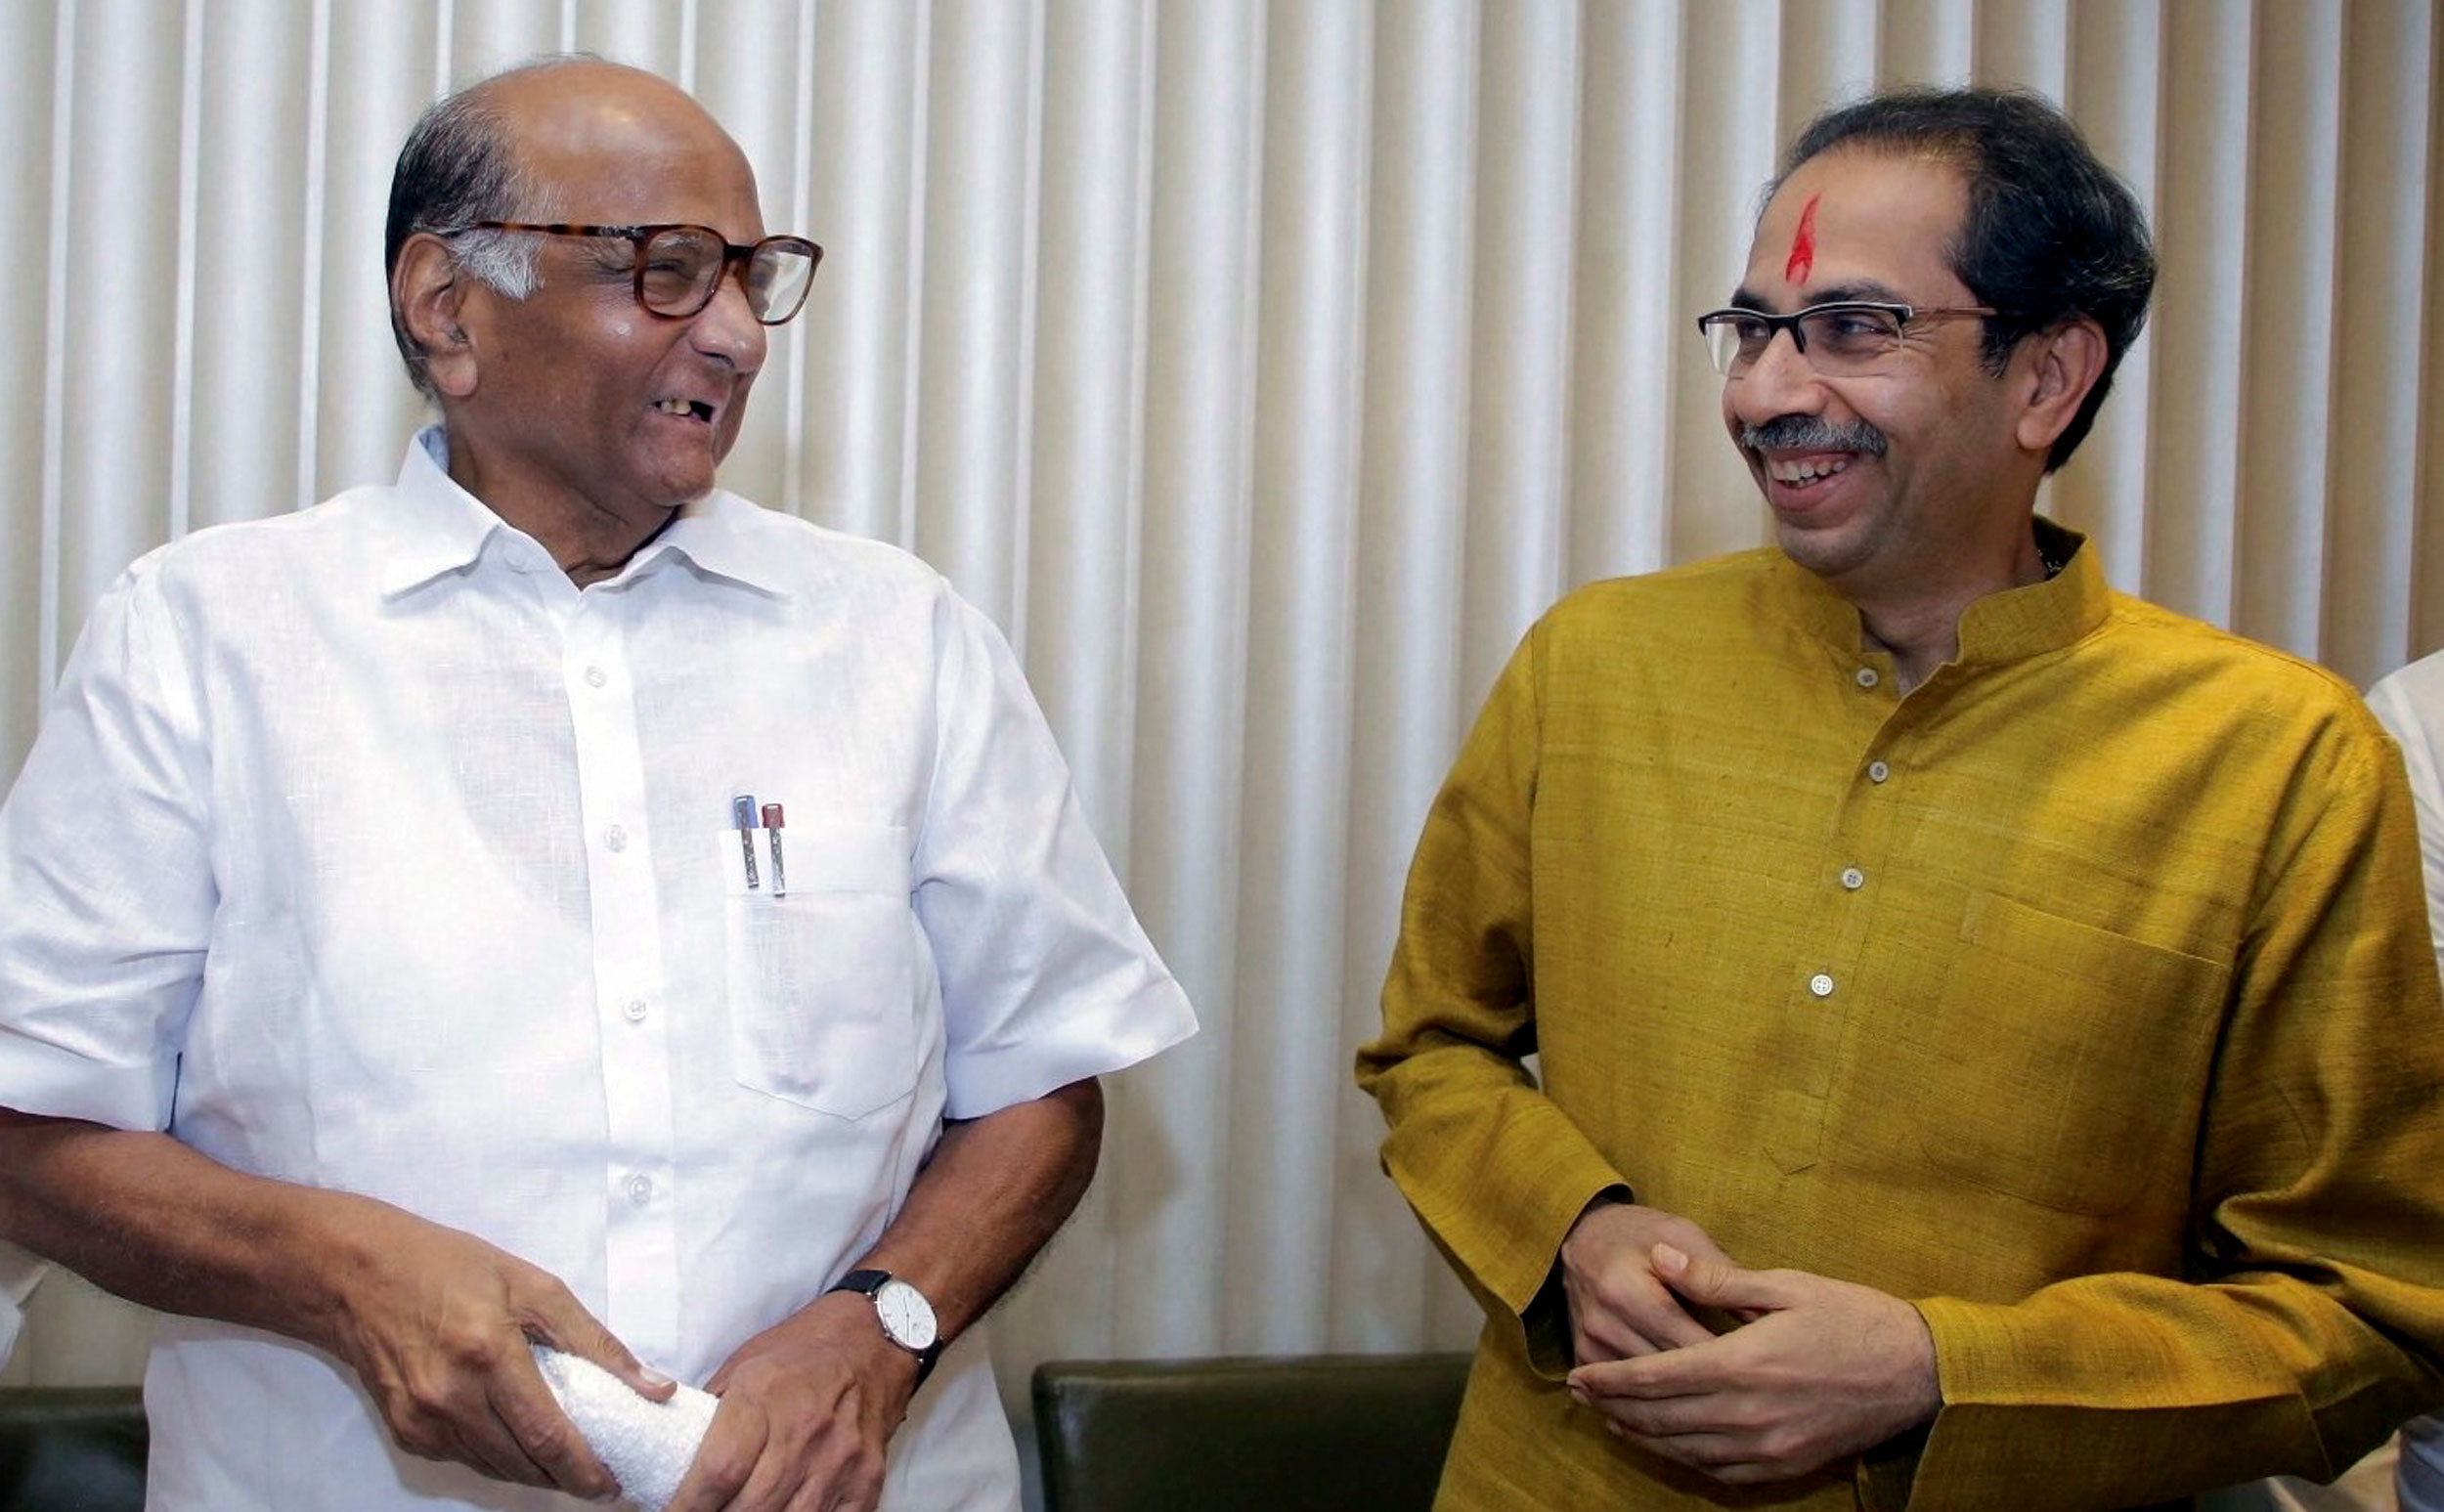 Uddhav Thackeray (right) with Sharad Pawar at a meeting in Mumbai on November 26, 2019. Ideological shifts have to be deftly managed and Uddhav Thackeray's leadership skills will be tested in the coming days.